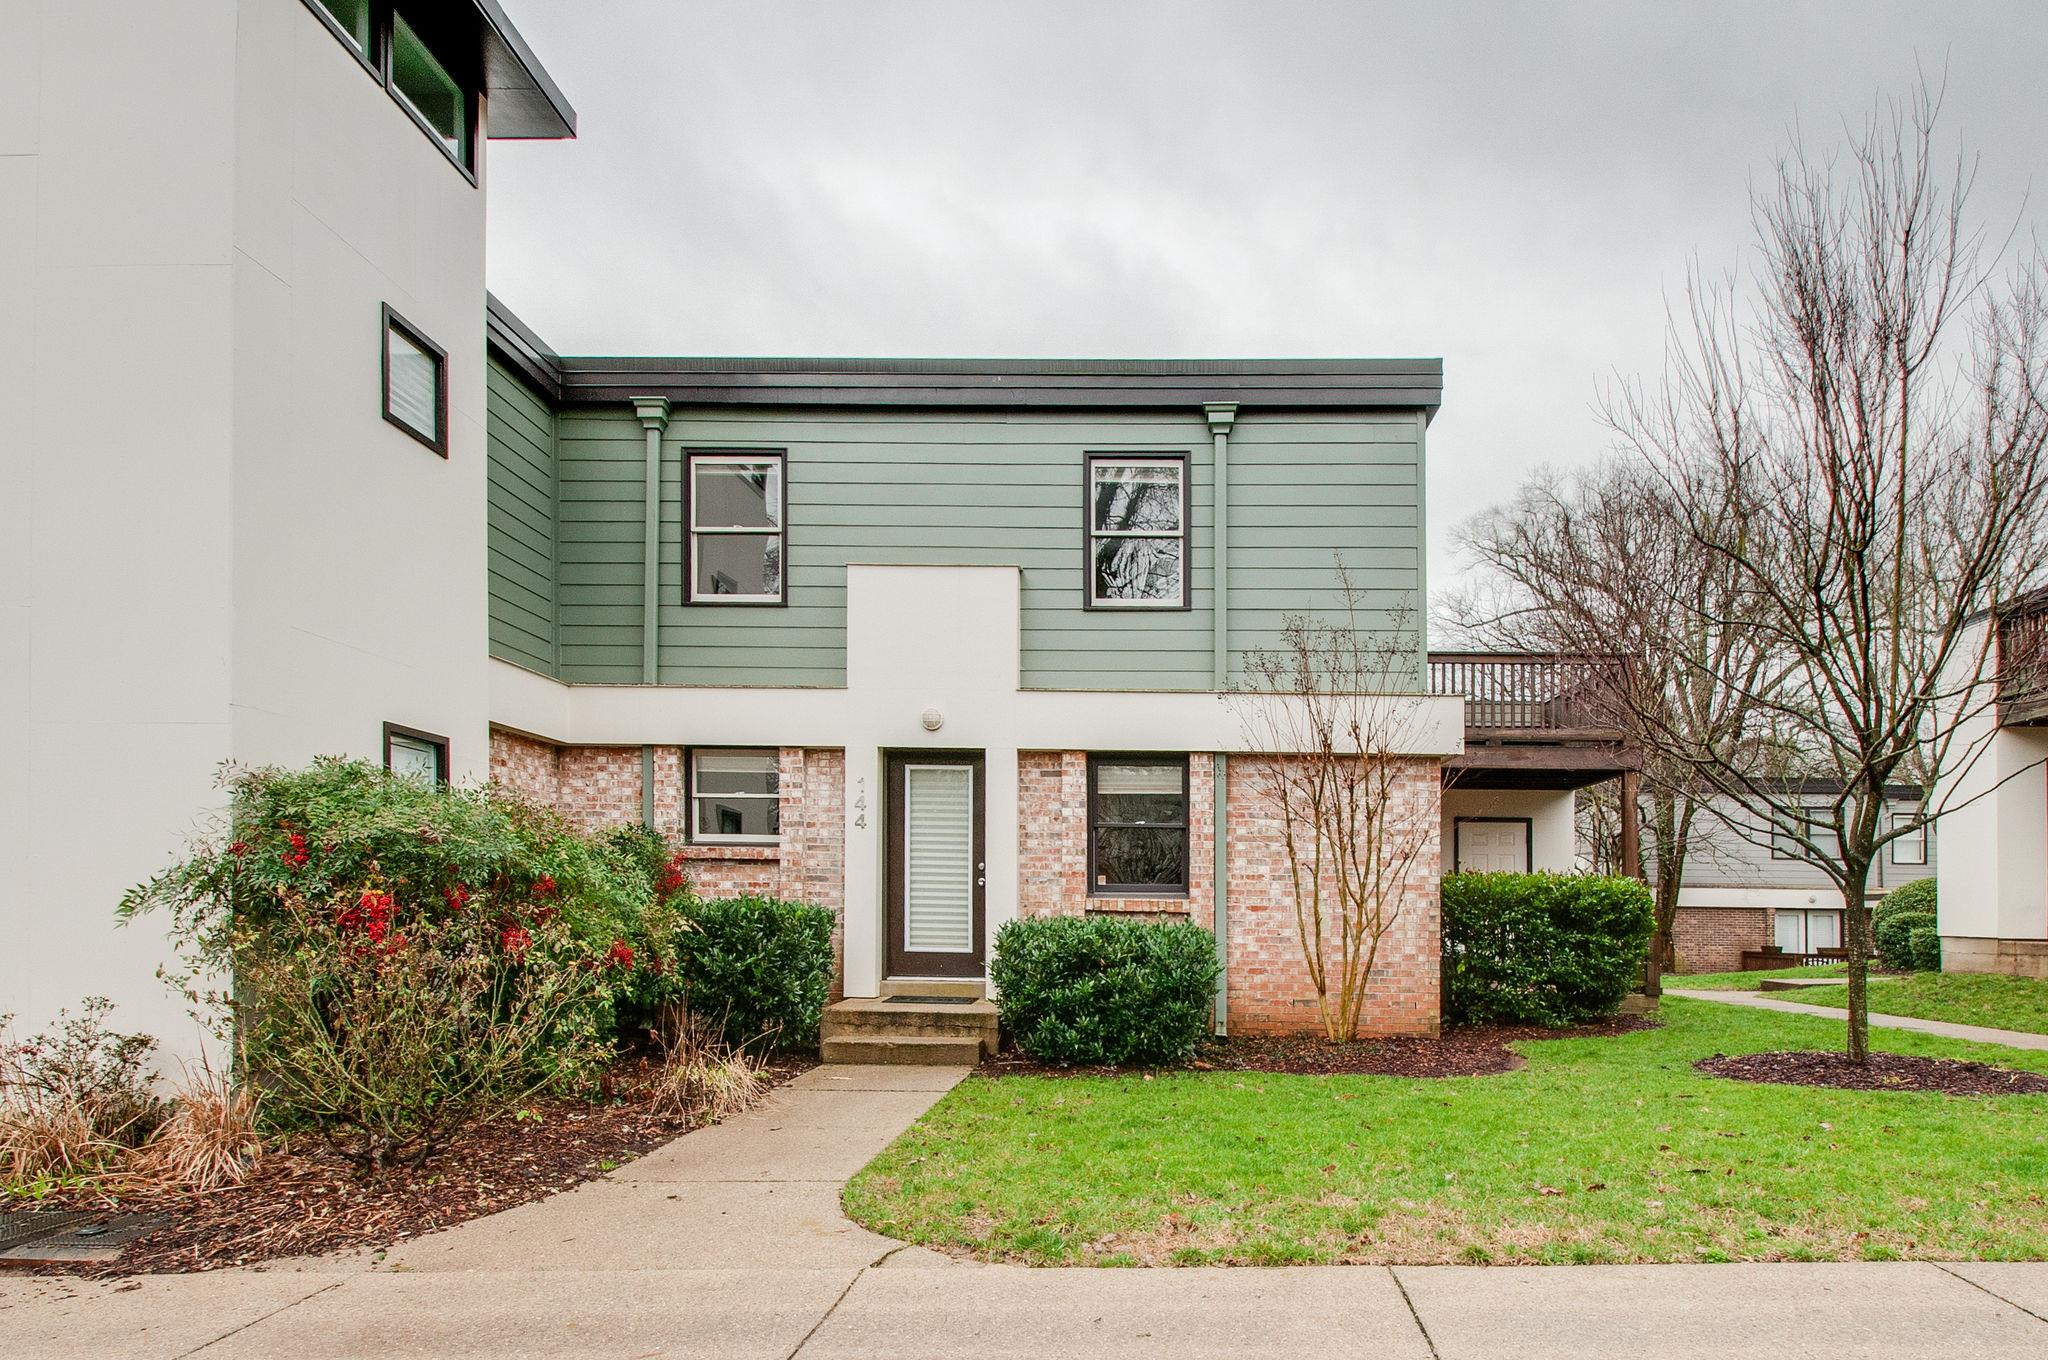 940 Gale Ln Apt 144, Nashville-Southeast in Davidson County County, TN 37204 Home for Sale